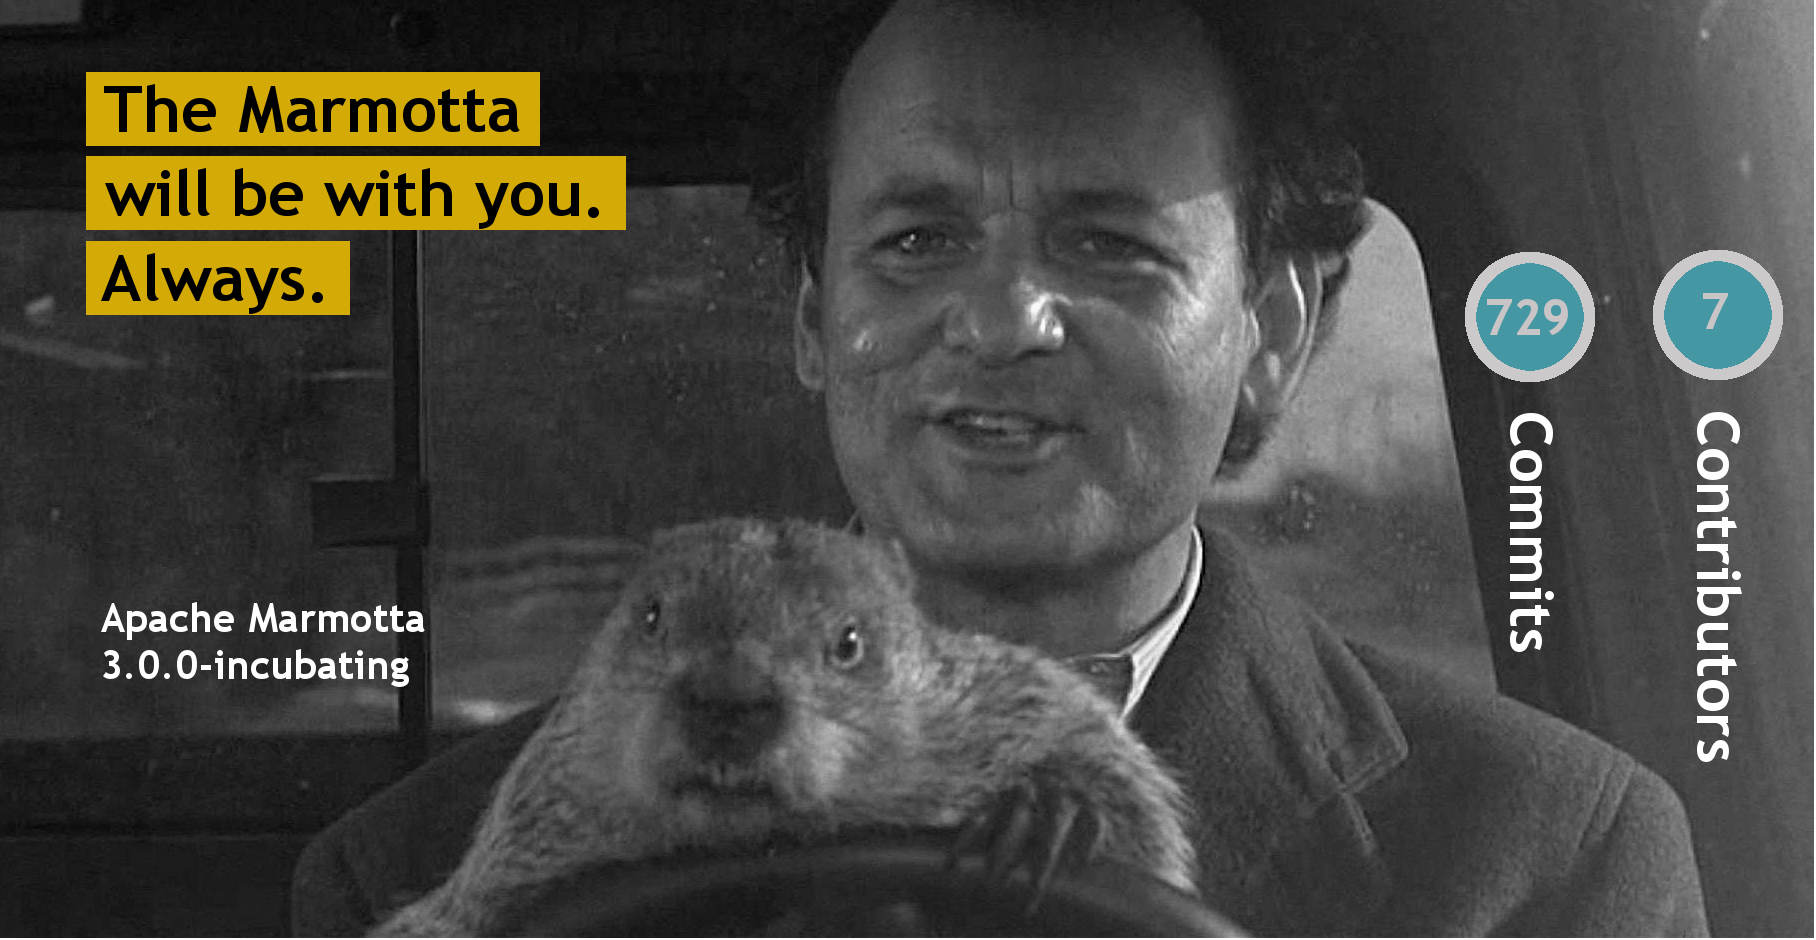 the Marmotta will be with you... always